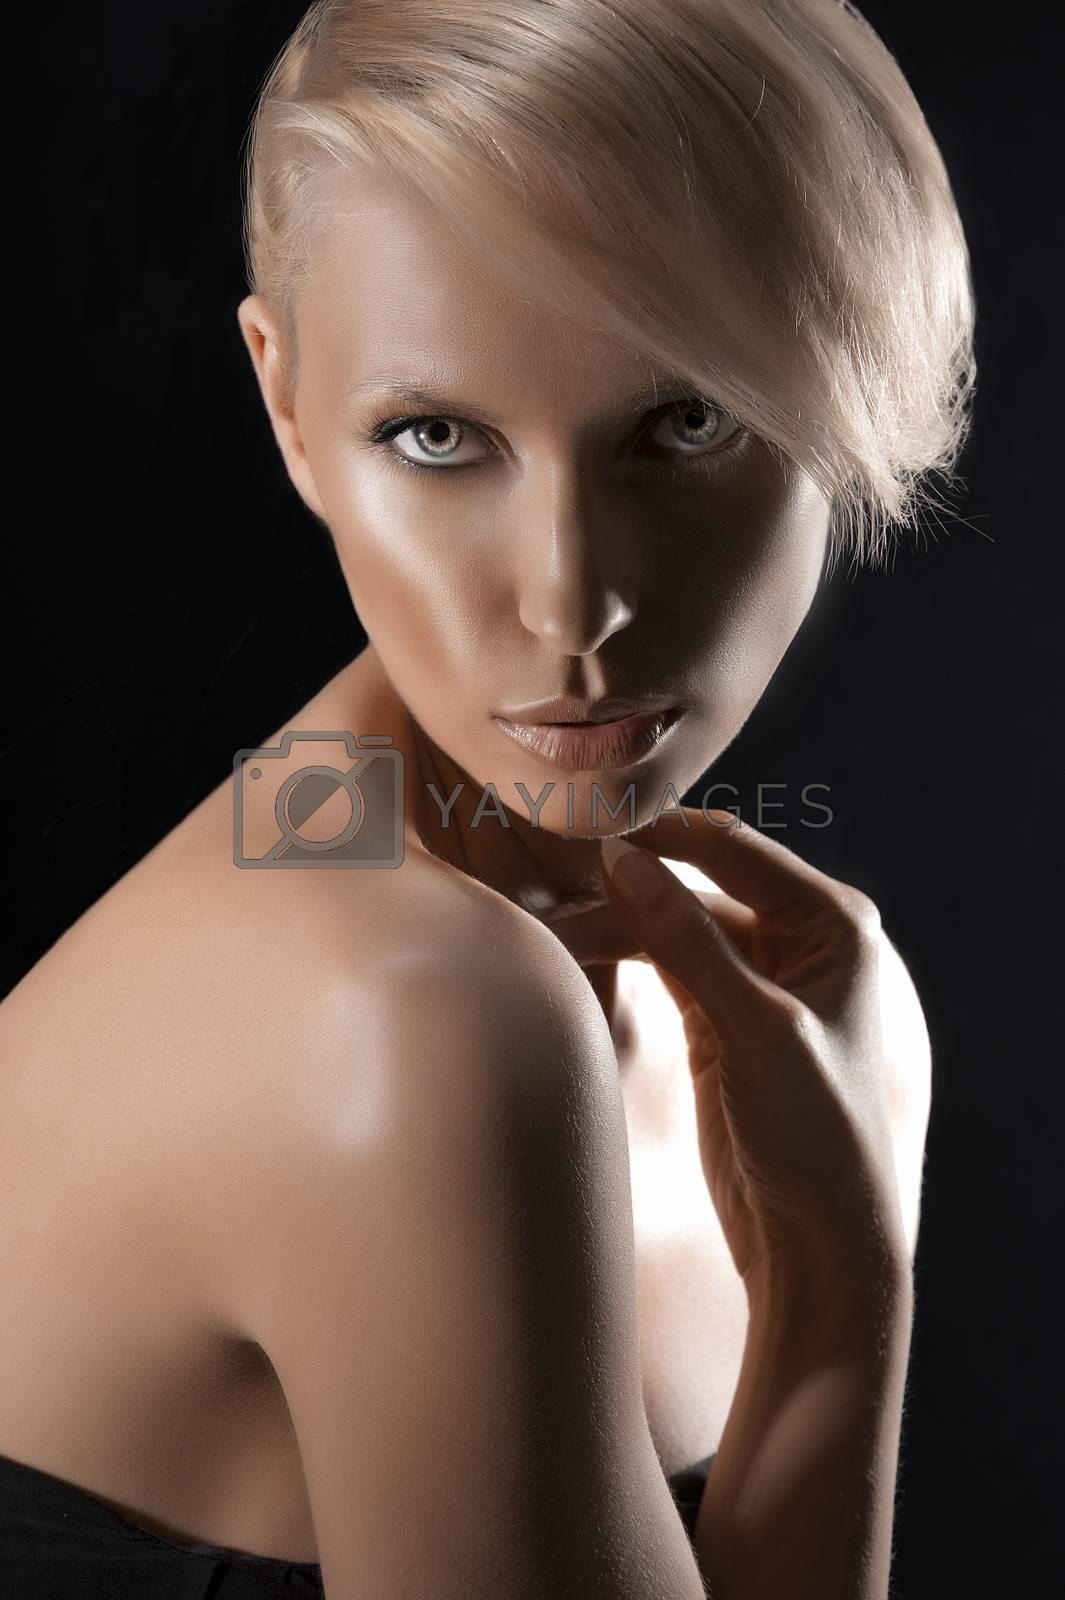 Royalty free image of beauty close up portrait of a blonde girl by fotoCD